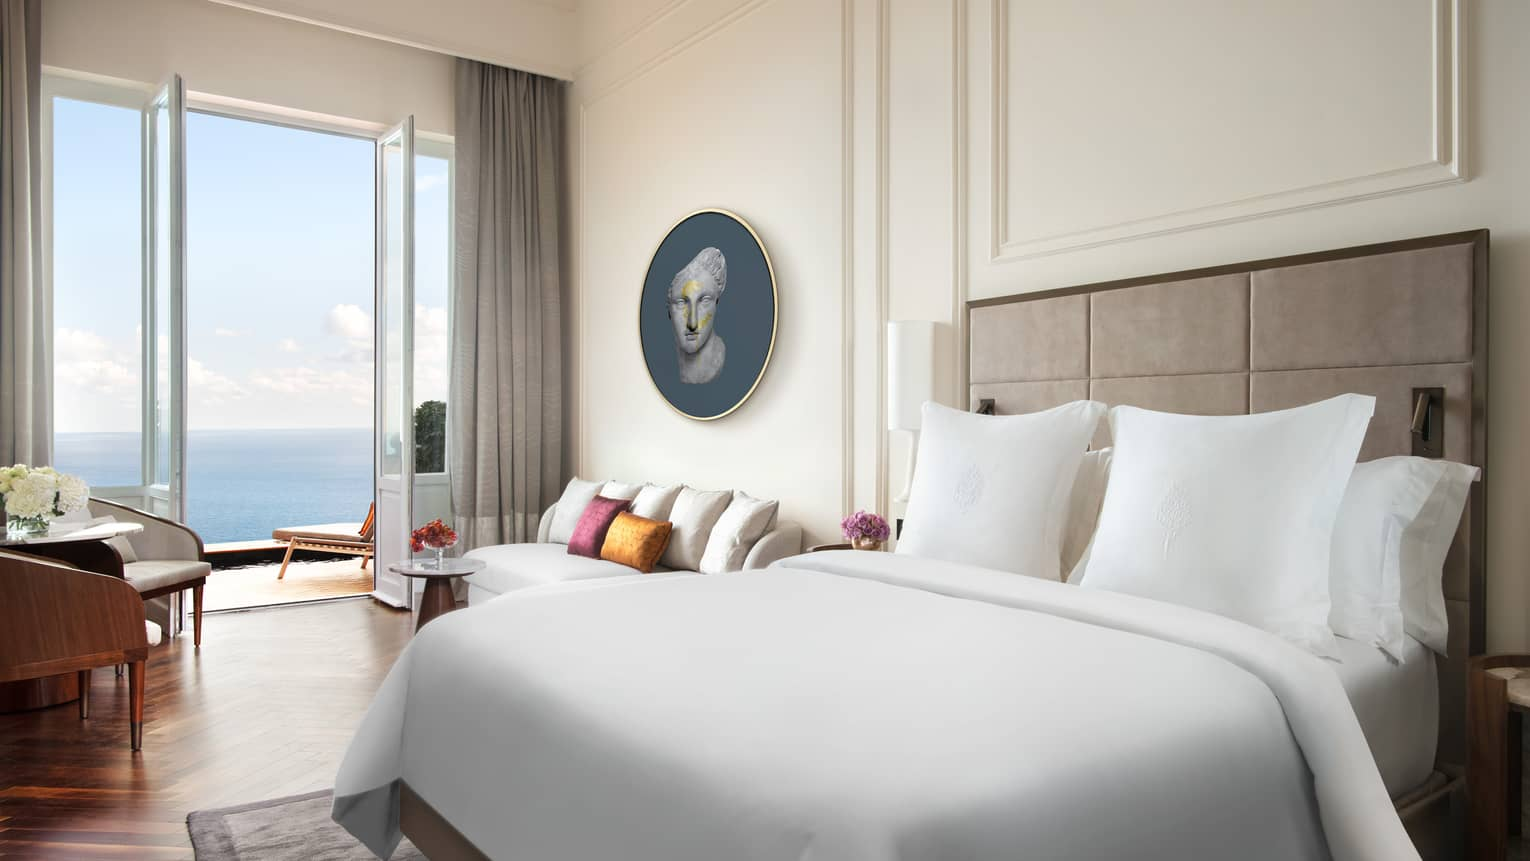 Hotel room with white king bed, white walls with crown molding, wood floors, walk-out sea-view balcony